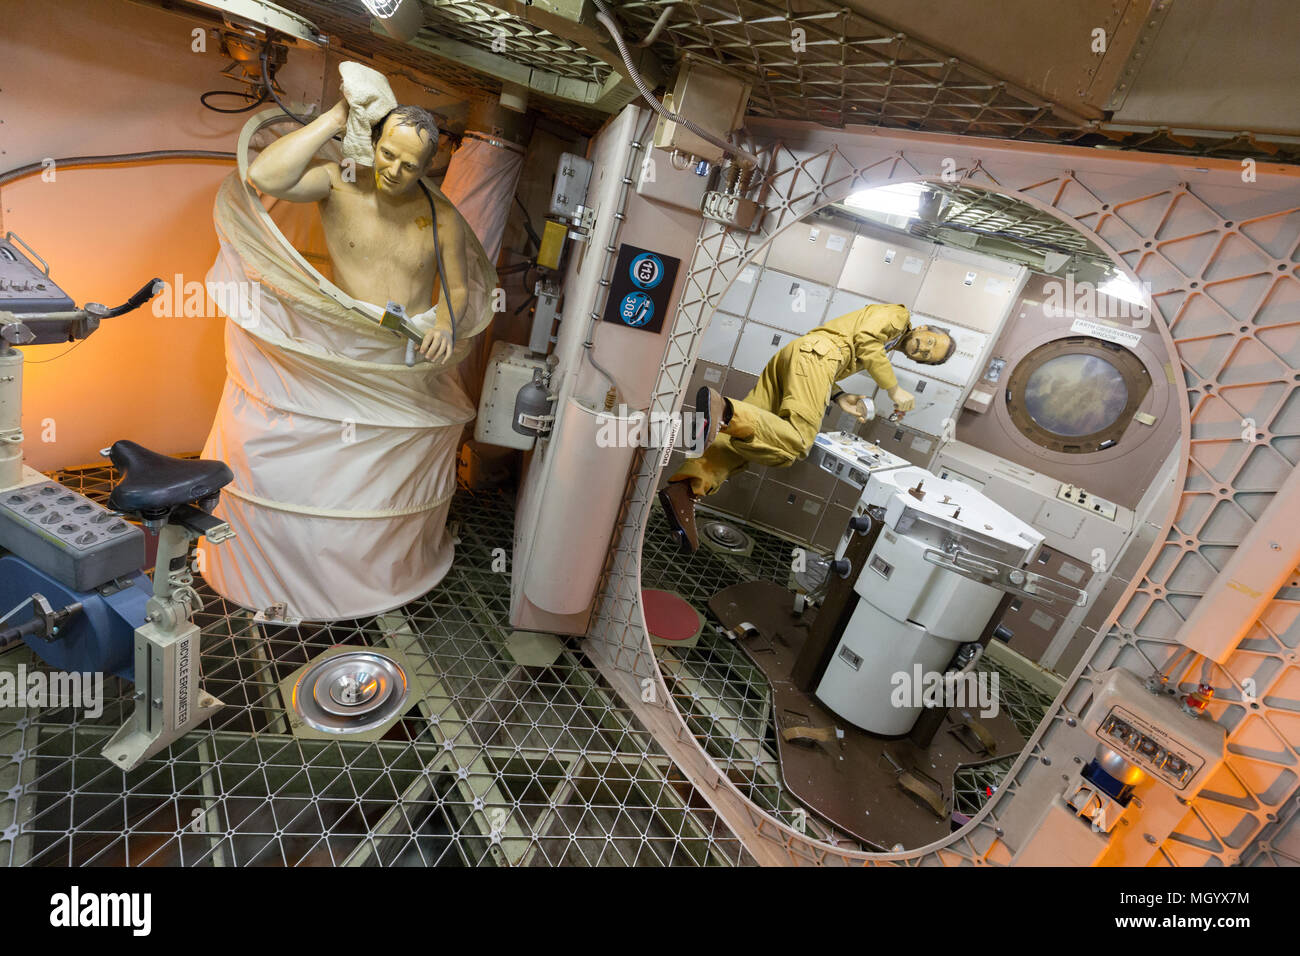 https://c8.alamy.com/comp/MGYX7M/interior-of-the-skylab-trainer-johnson-space-center-houston-texas-usa-MGYX7M.jpg